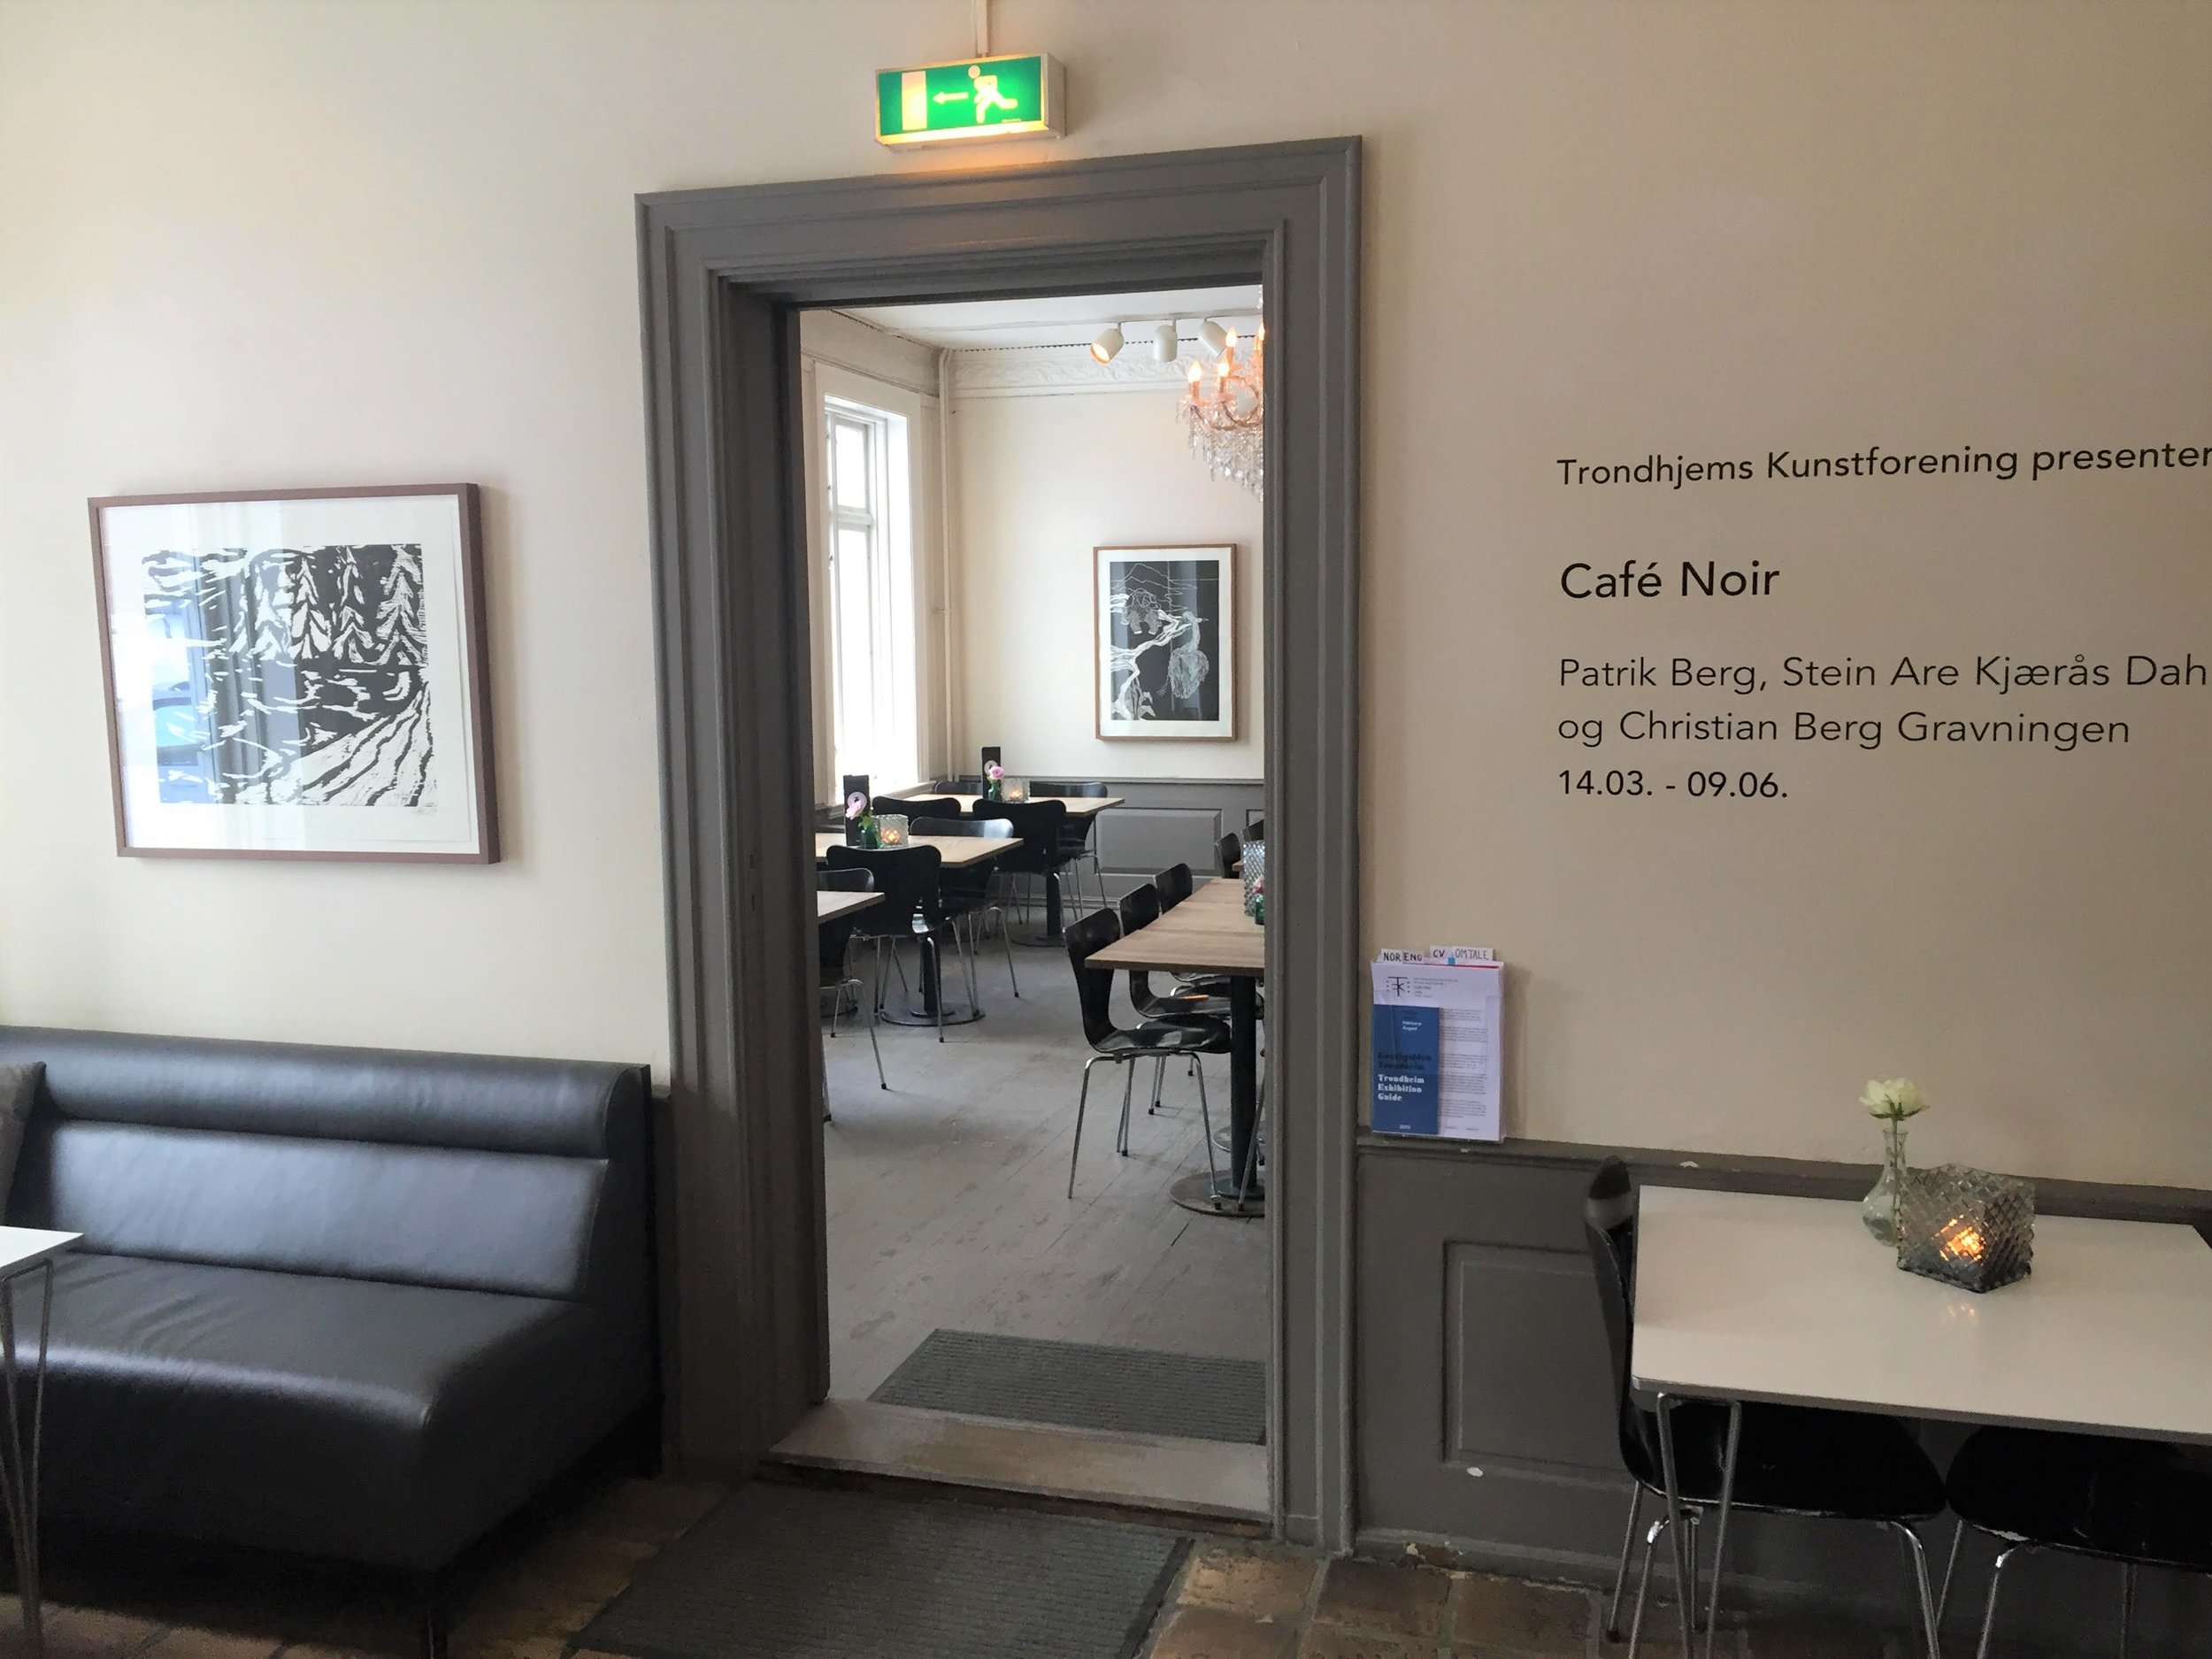 cafe noir inst6.jpg